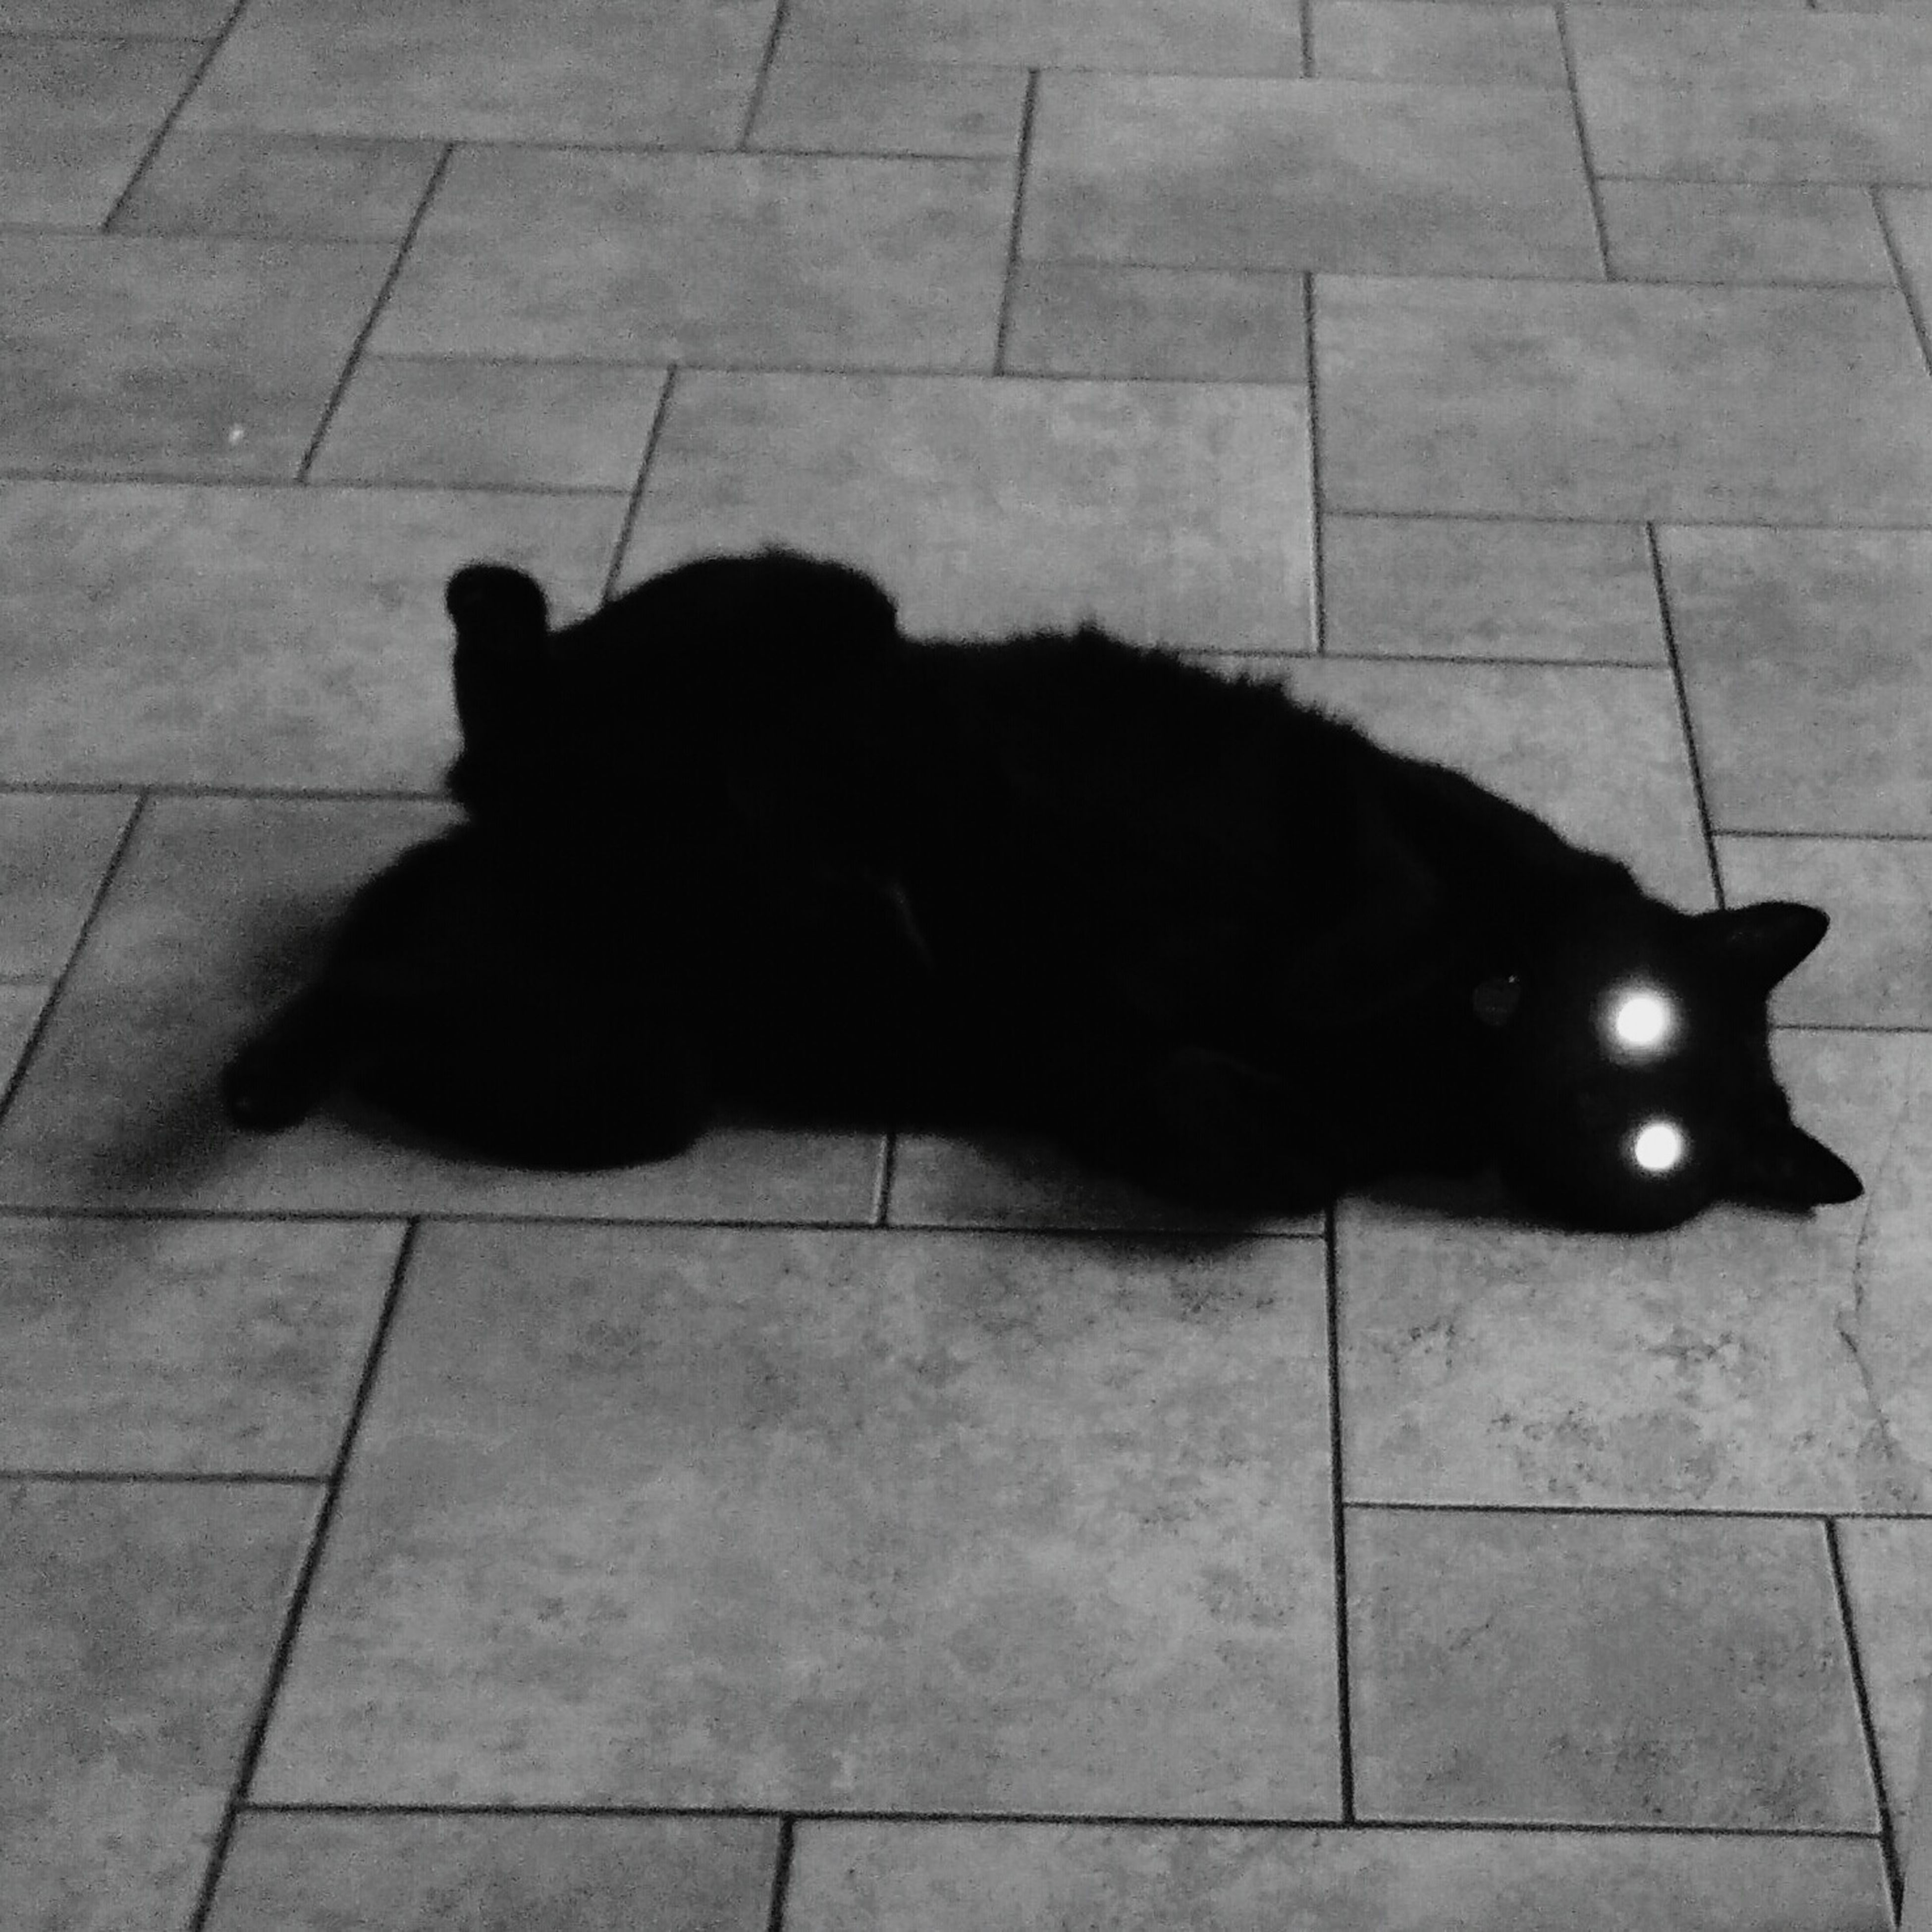 pets, domestic animals, domestic cat, animal themes, cat, one animal, mammal, feline, relaxation, indoors, black color, high angle view, tiled floor, lying down, flooring, resting, black, floor, full length, whisker